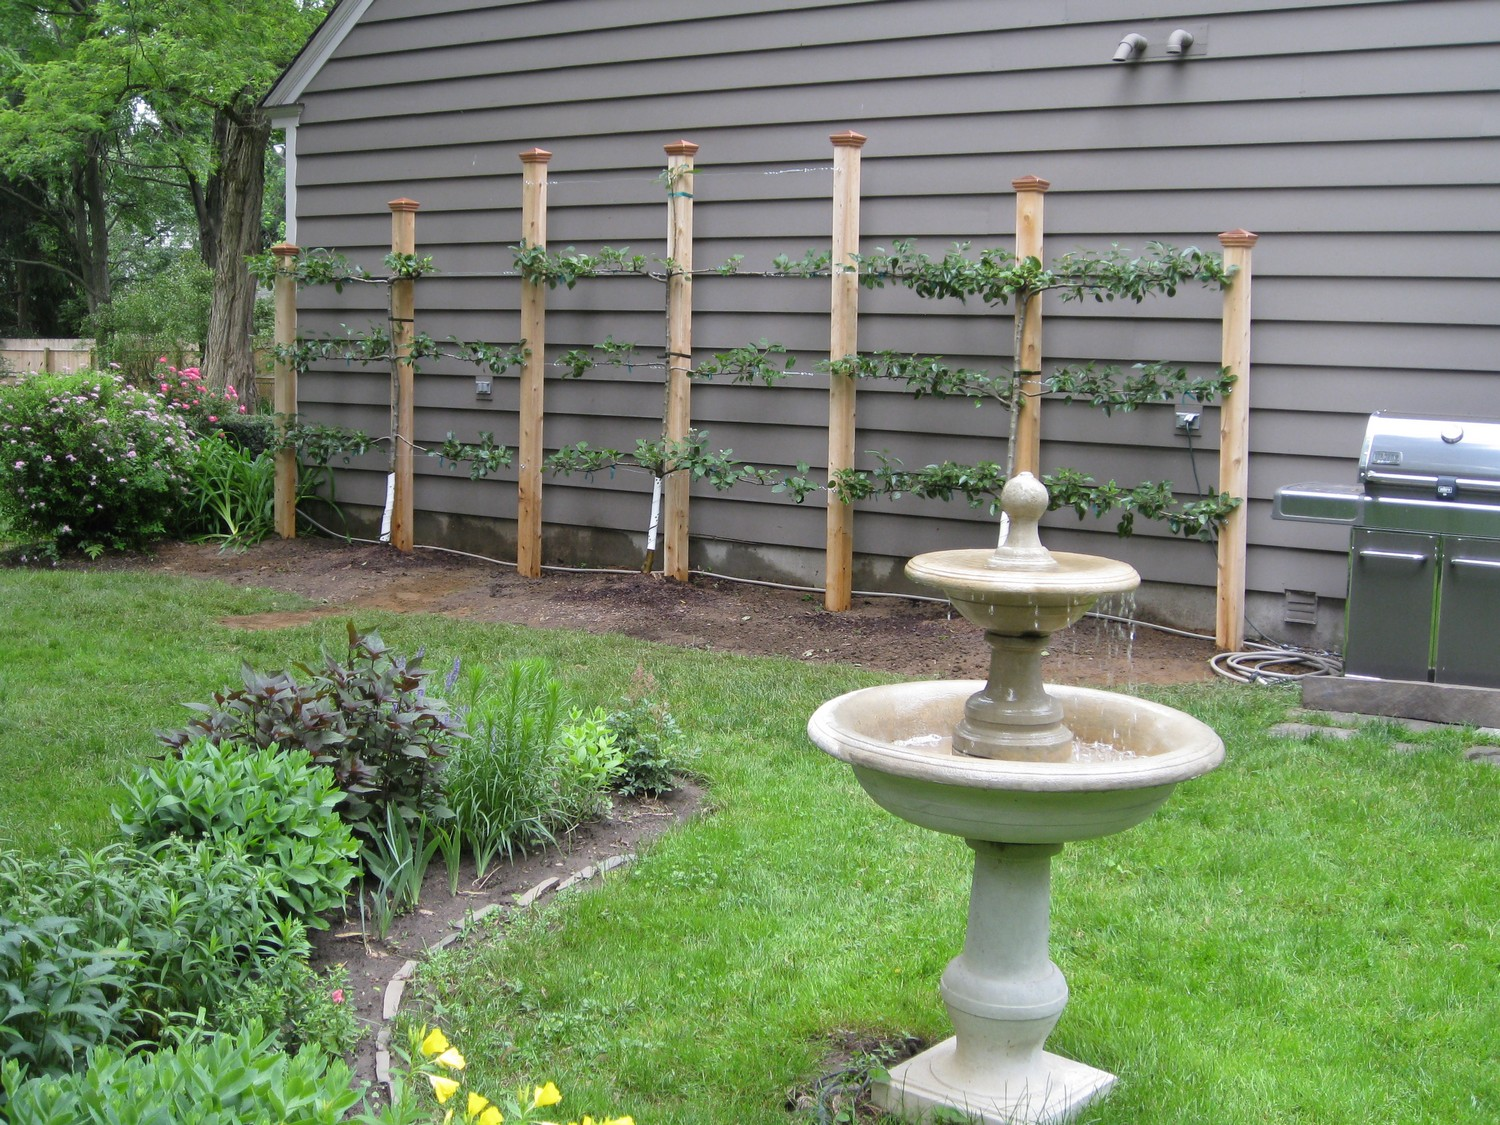 Garden structure design scotia ny landscaping and for Garden structure design